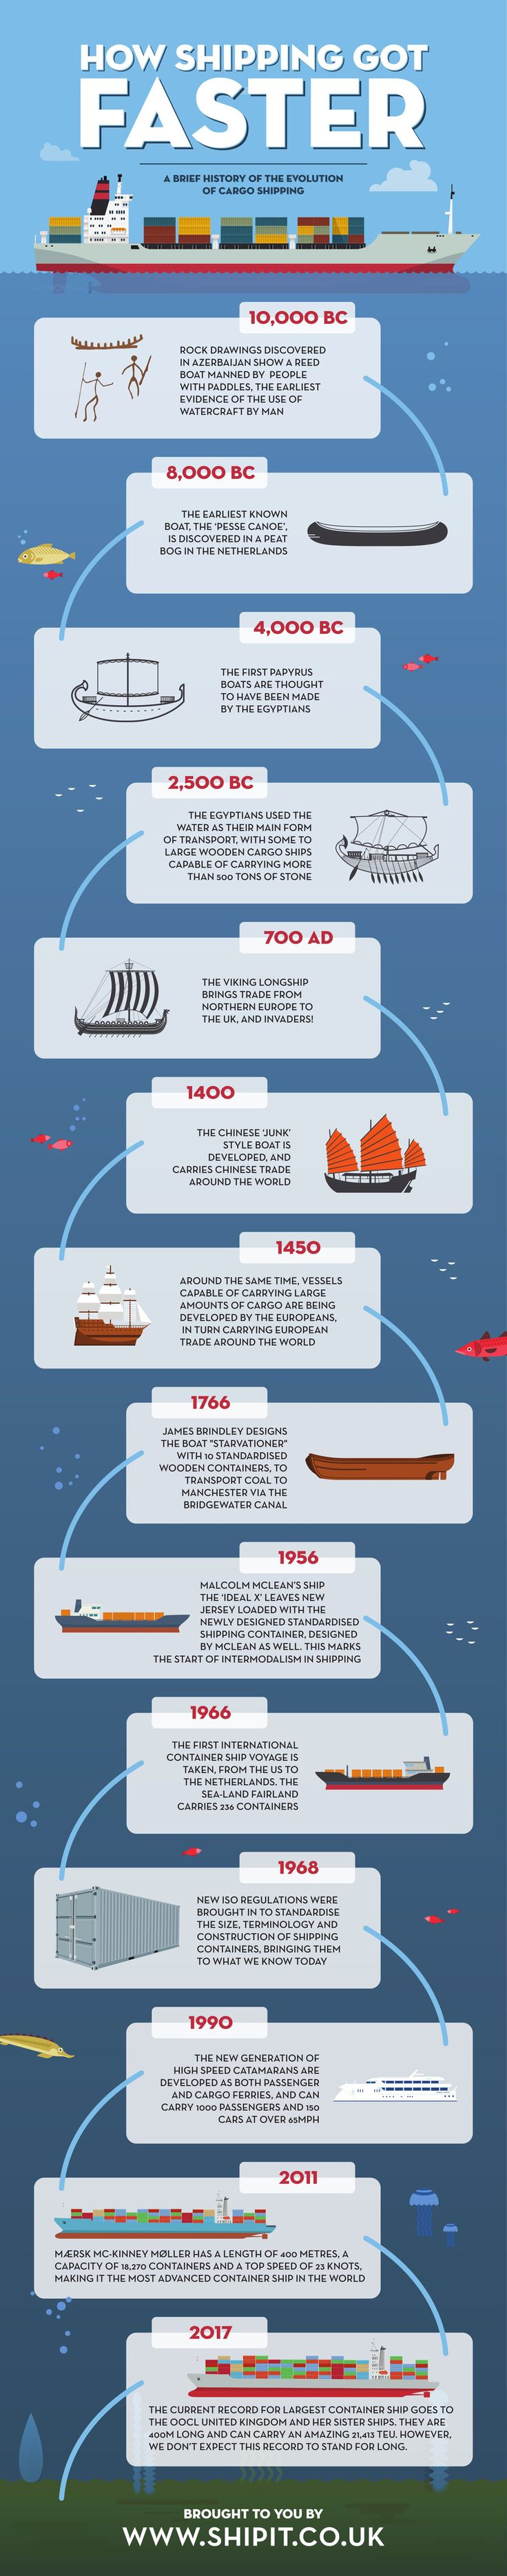 How Shipping Got Faster